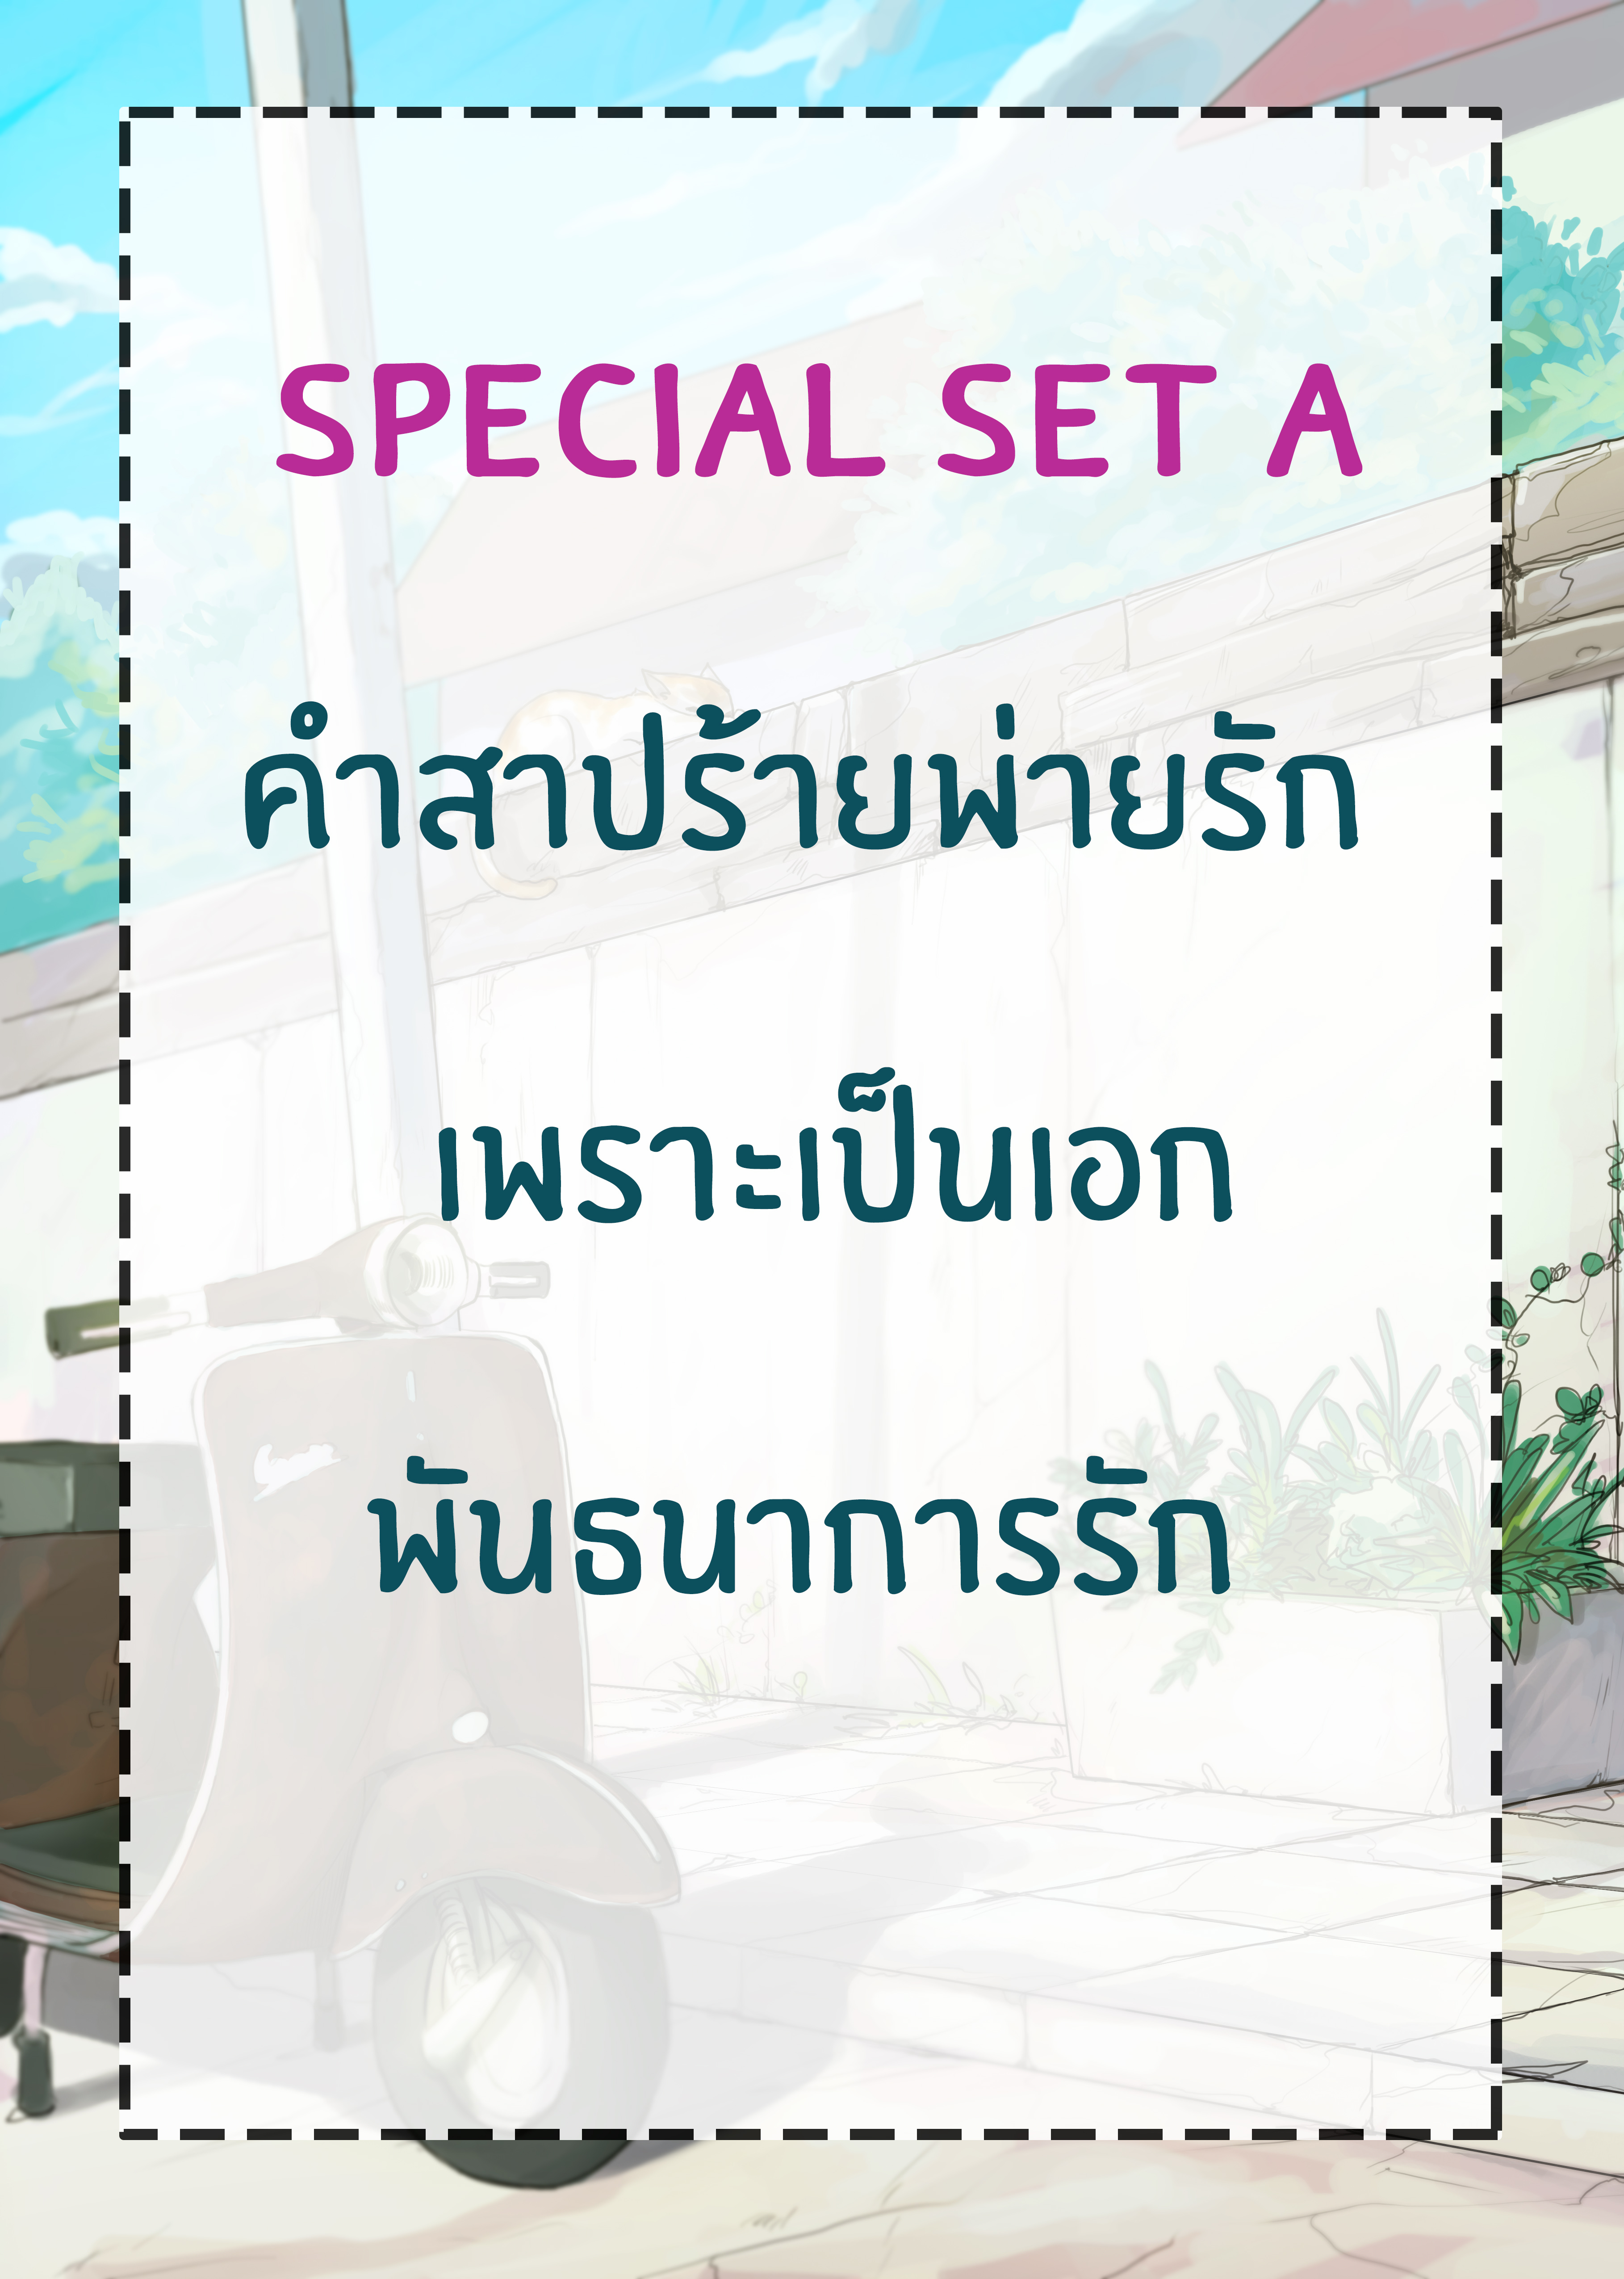 [ Pre order ] Special SET A โอนเงินได้ถึงวันที่ 16 /01/2017